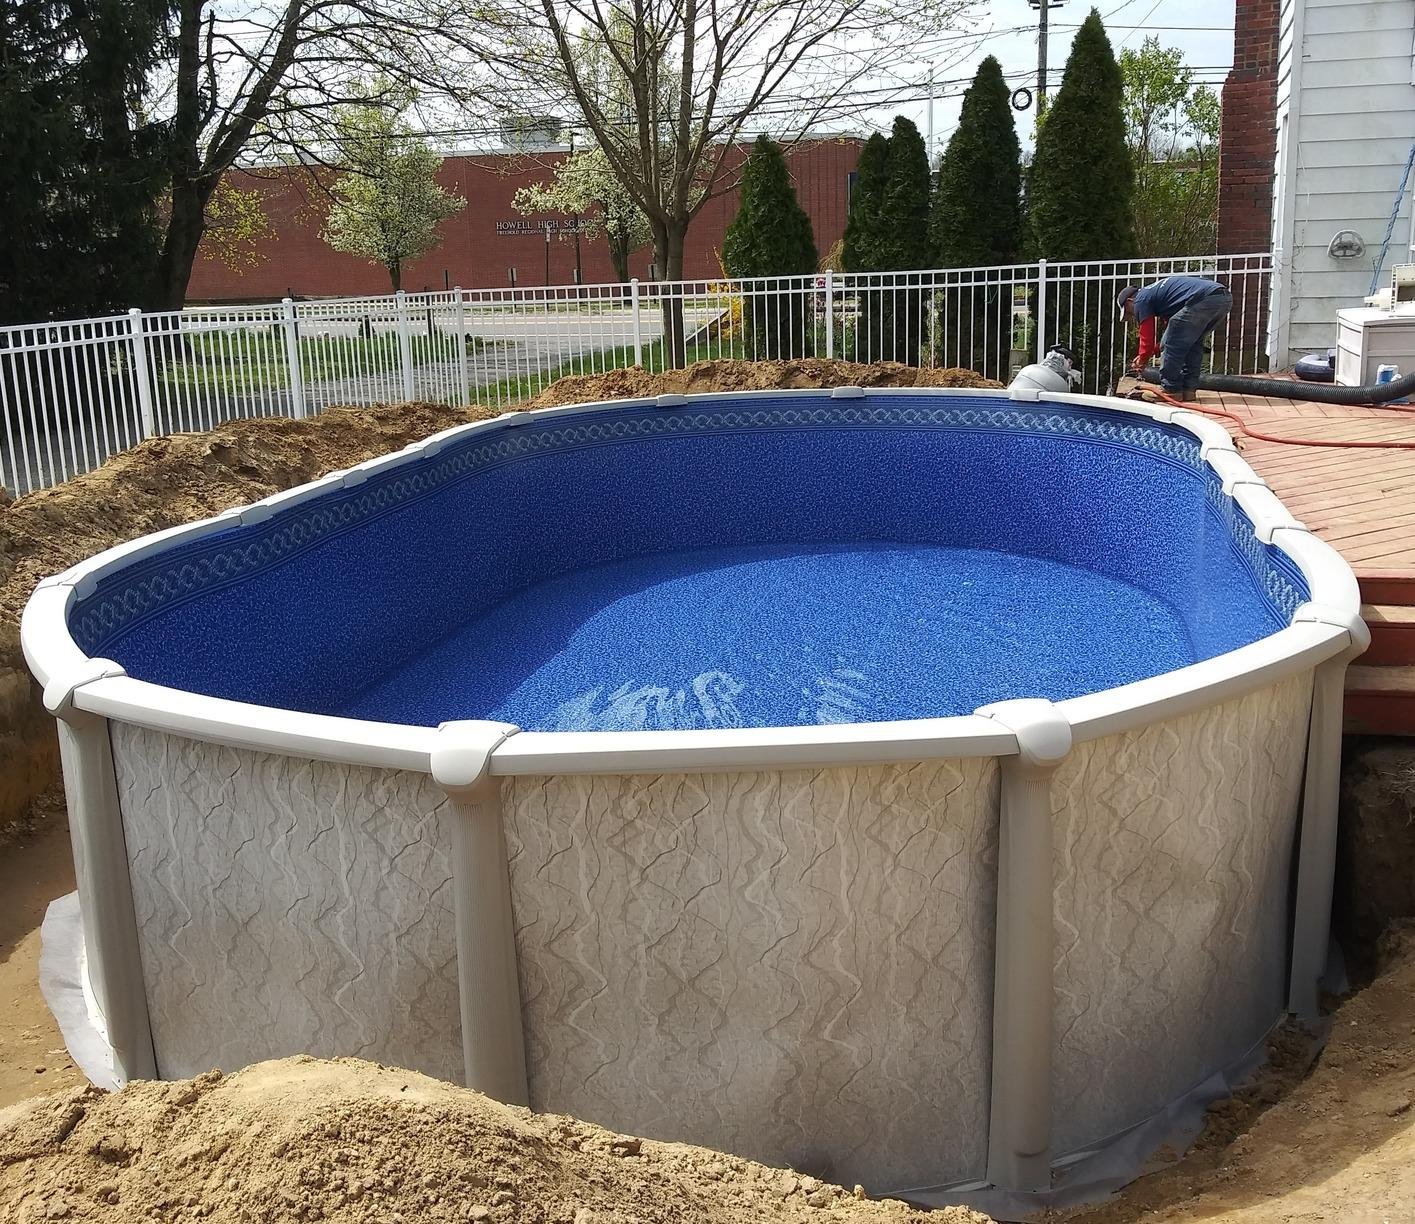 Above Ground Pool Installation in Farmingdale, NJ - After Photo